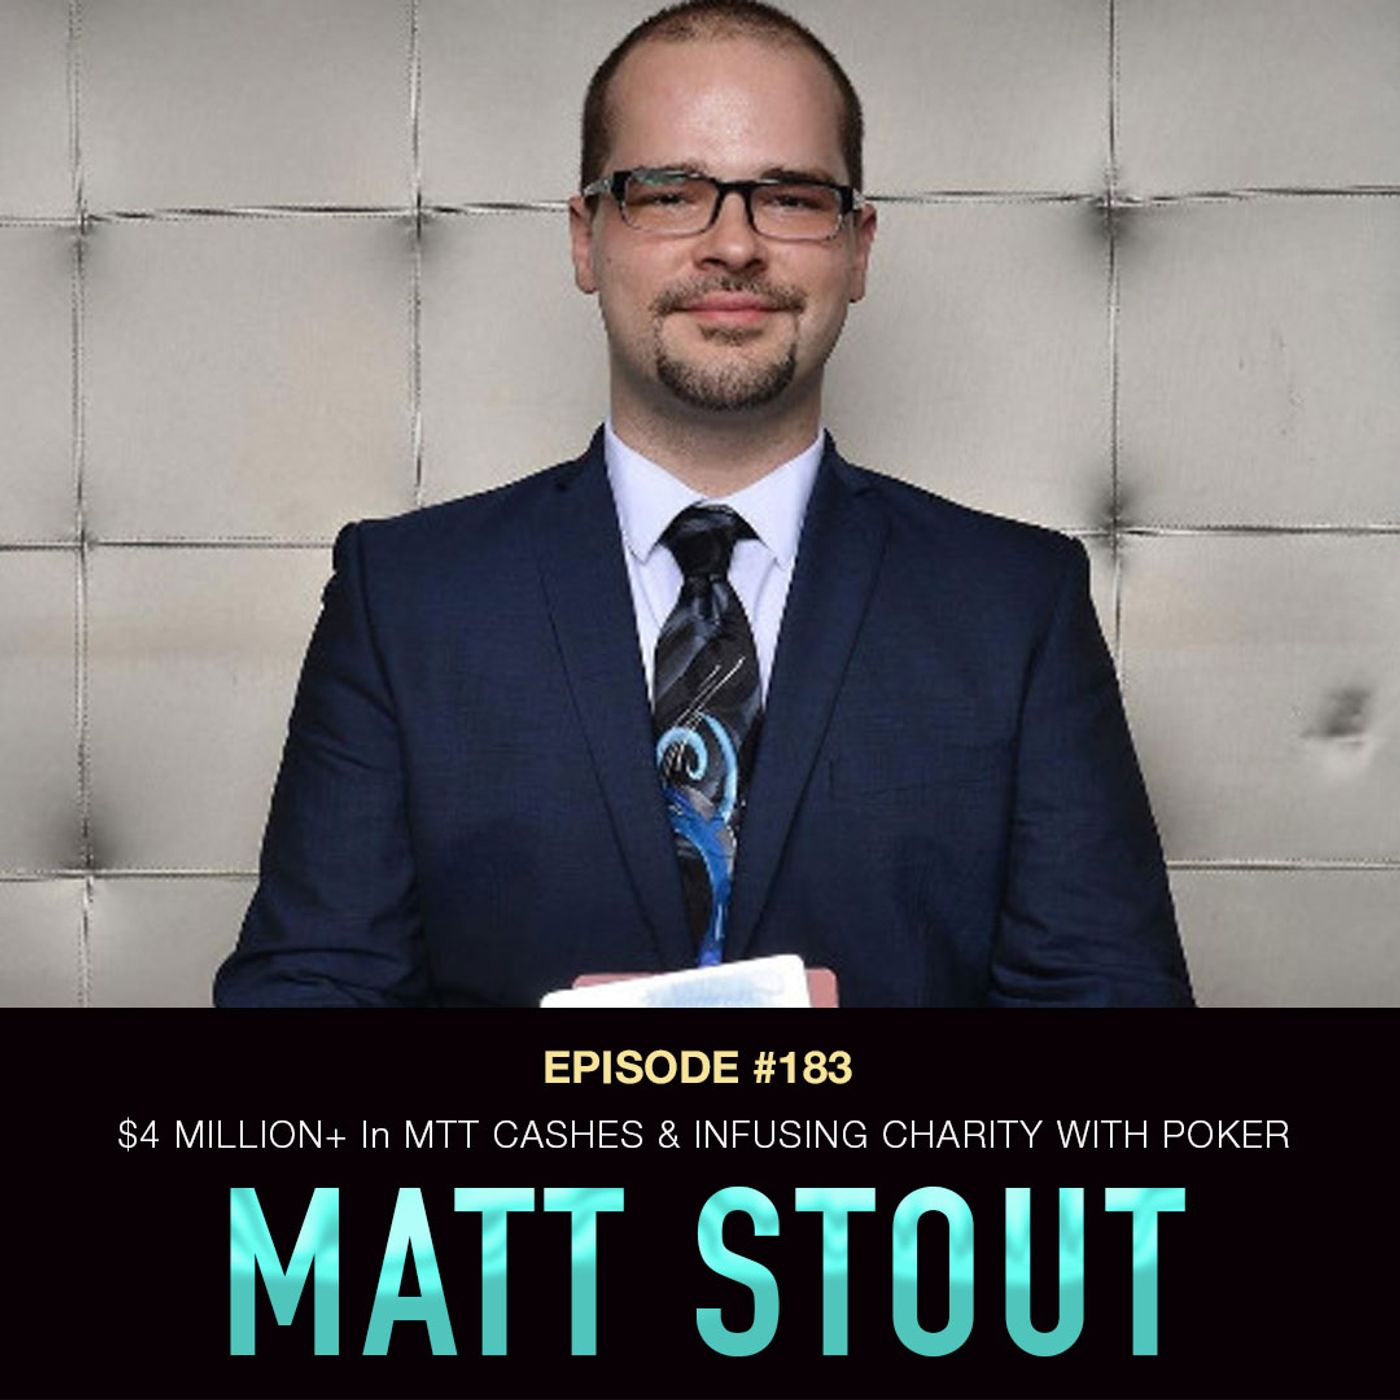 #183 Matt Stout: $4 Million+ In MTT Cashes & Infusing Charity with Poker